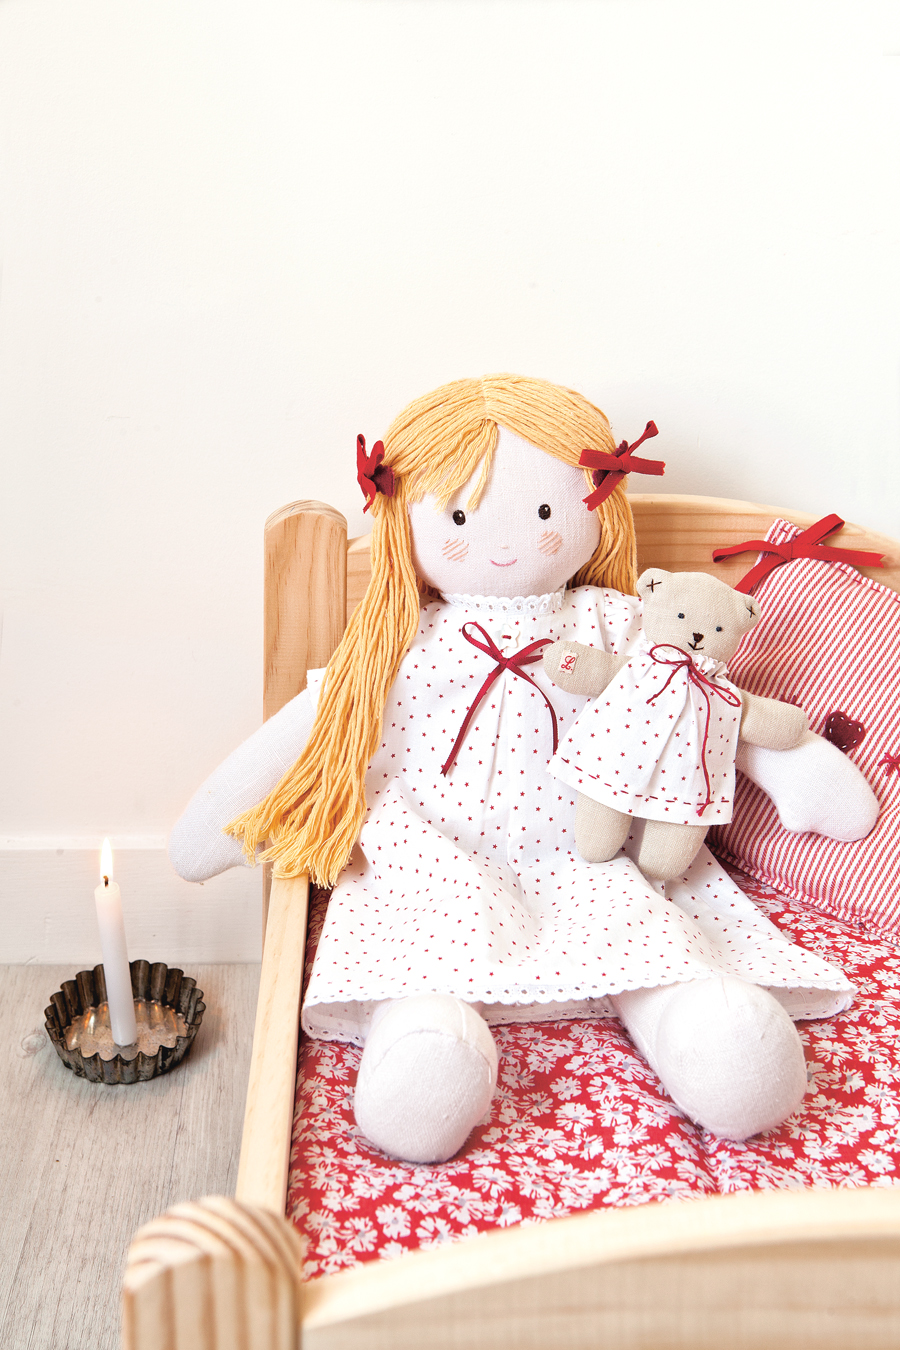 Page 71 - Bed time doll